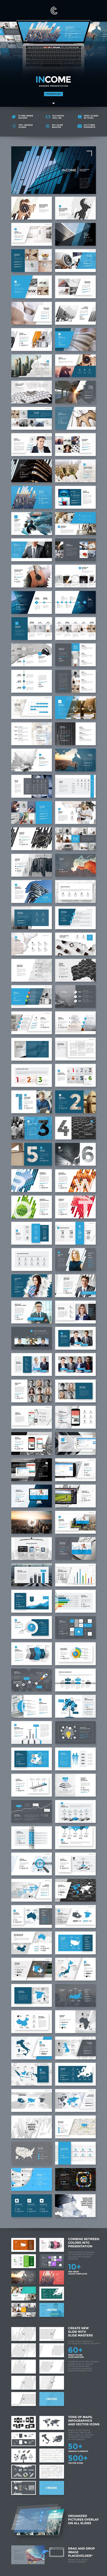 Income PowerPoint - PowerPoint Templates Presentation Templates Download here: https://graphicriver.net/item/income-powerpoint/19777446?ref=classicdesignp